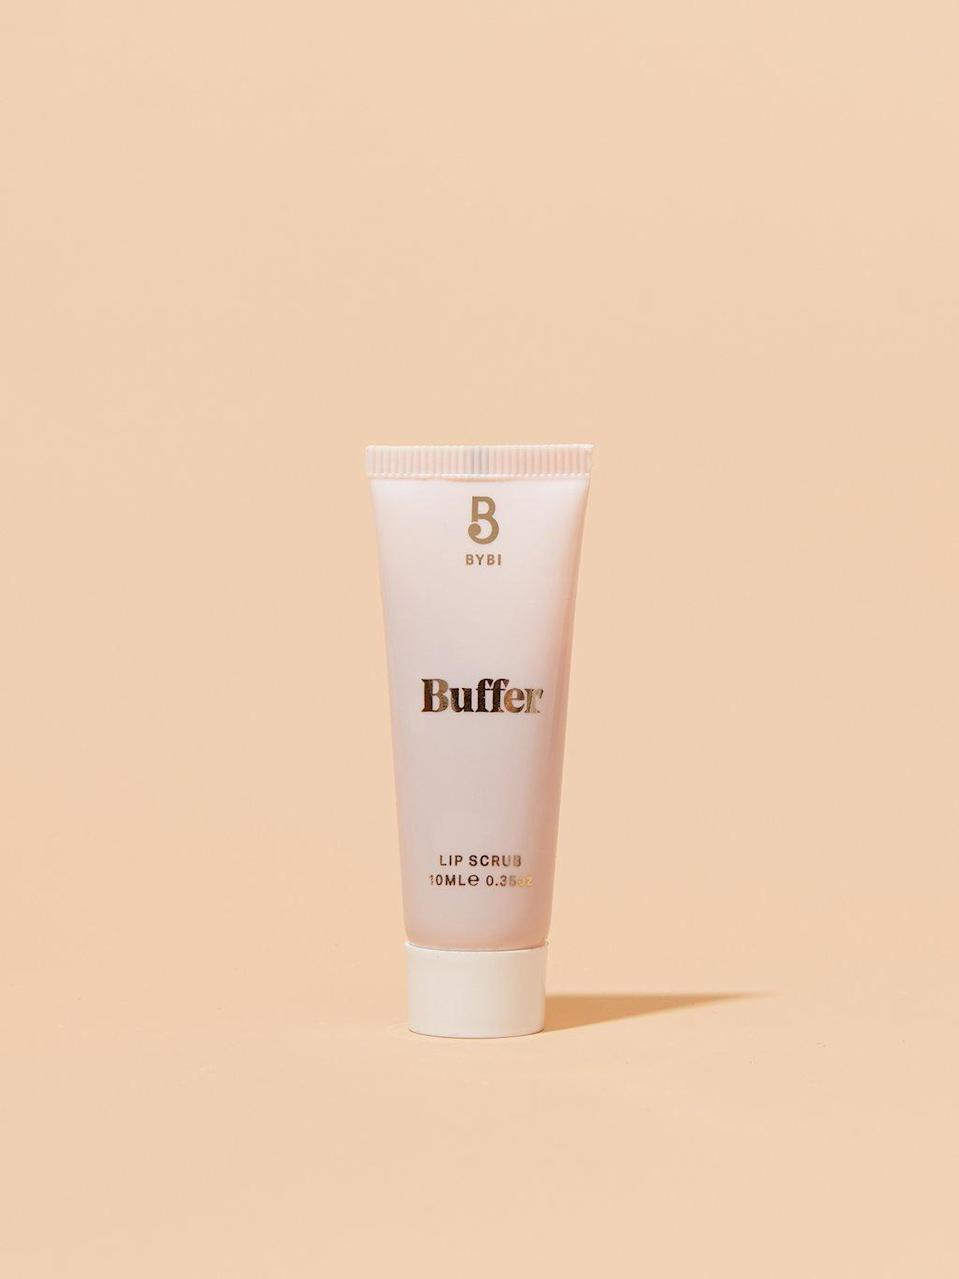 """<h3>Bybi Lip Buffer</h3><br>Packaged in a biodegradable tube made of sugarcane, this 100% natural and vegan lip scrub uses a cocktail of sugar and strawberry extract to slough away dead and dry skin, and sweet almond oil to help restore moisture.<br><br><strong>BYBI Beauty</strong> Lip Buffer, $, available at <a href=""""https://go.skimresources.com/?id=30283X879131&url=https%3A%2F%2Fcredobeauty.com%2Fproducts%2Fbuffer%3Fvariant%3D2403277275148%26currency%3DUSD%26gclid%3DEAIaIQobChMI-f_r_vTO5wIVkYFaBR3lUgd6EAQYASABEgJRNPD_BwE"""" rel=""""nofollow noopener"""" target=""""_blank"""" data-ylk=""""slk:Credo"""" class=""""link rapid-noclick-resp"""">Credo</a>"""